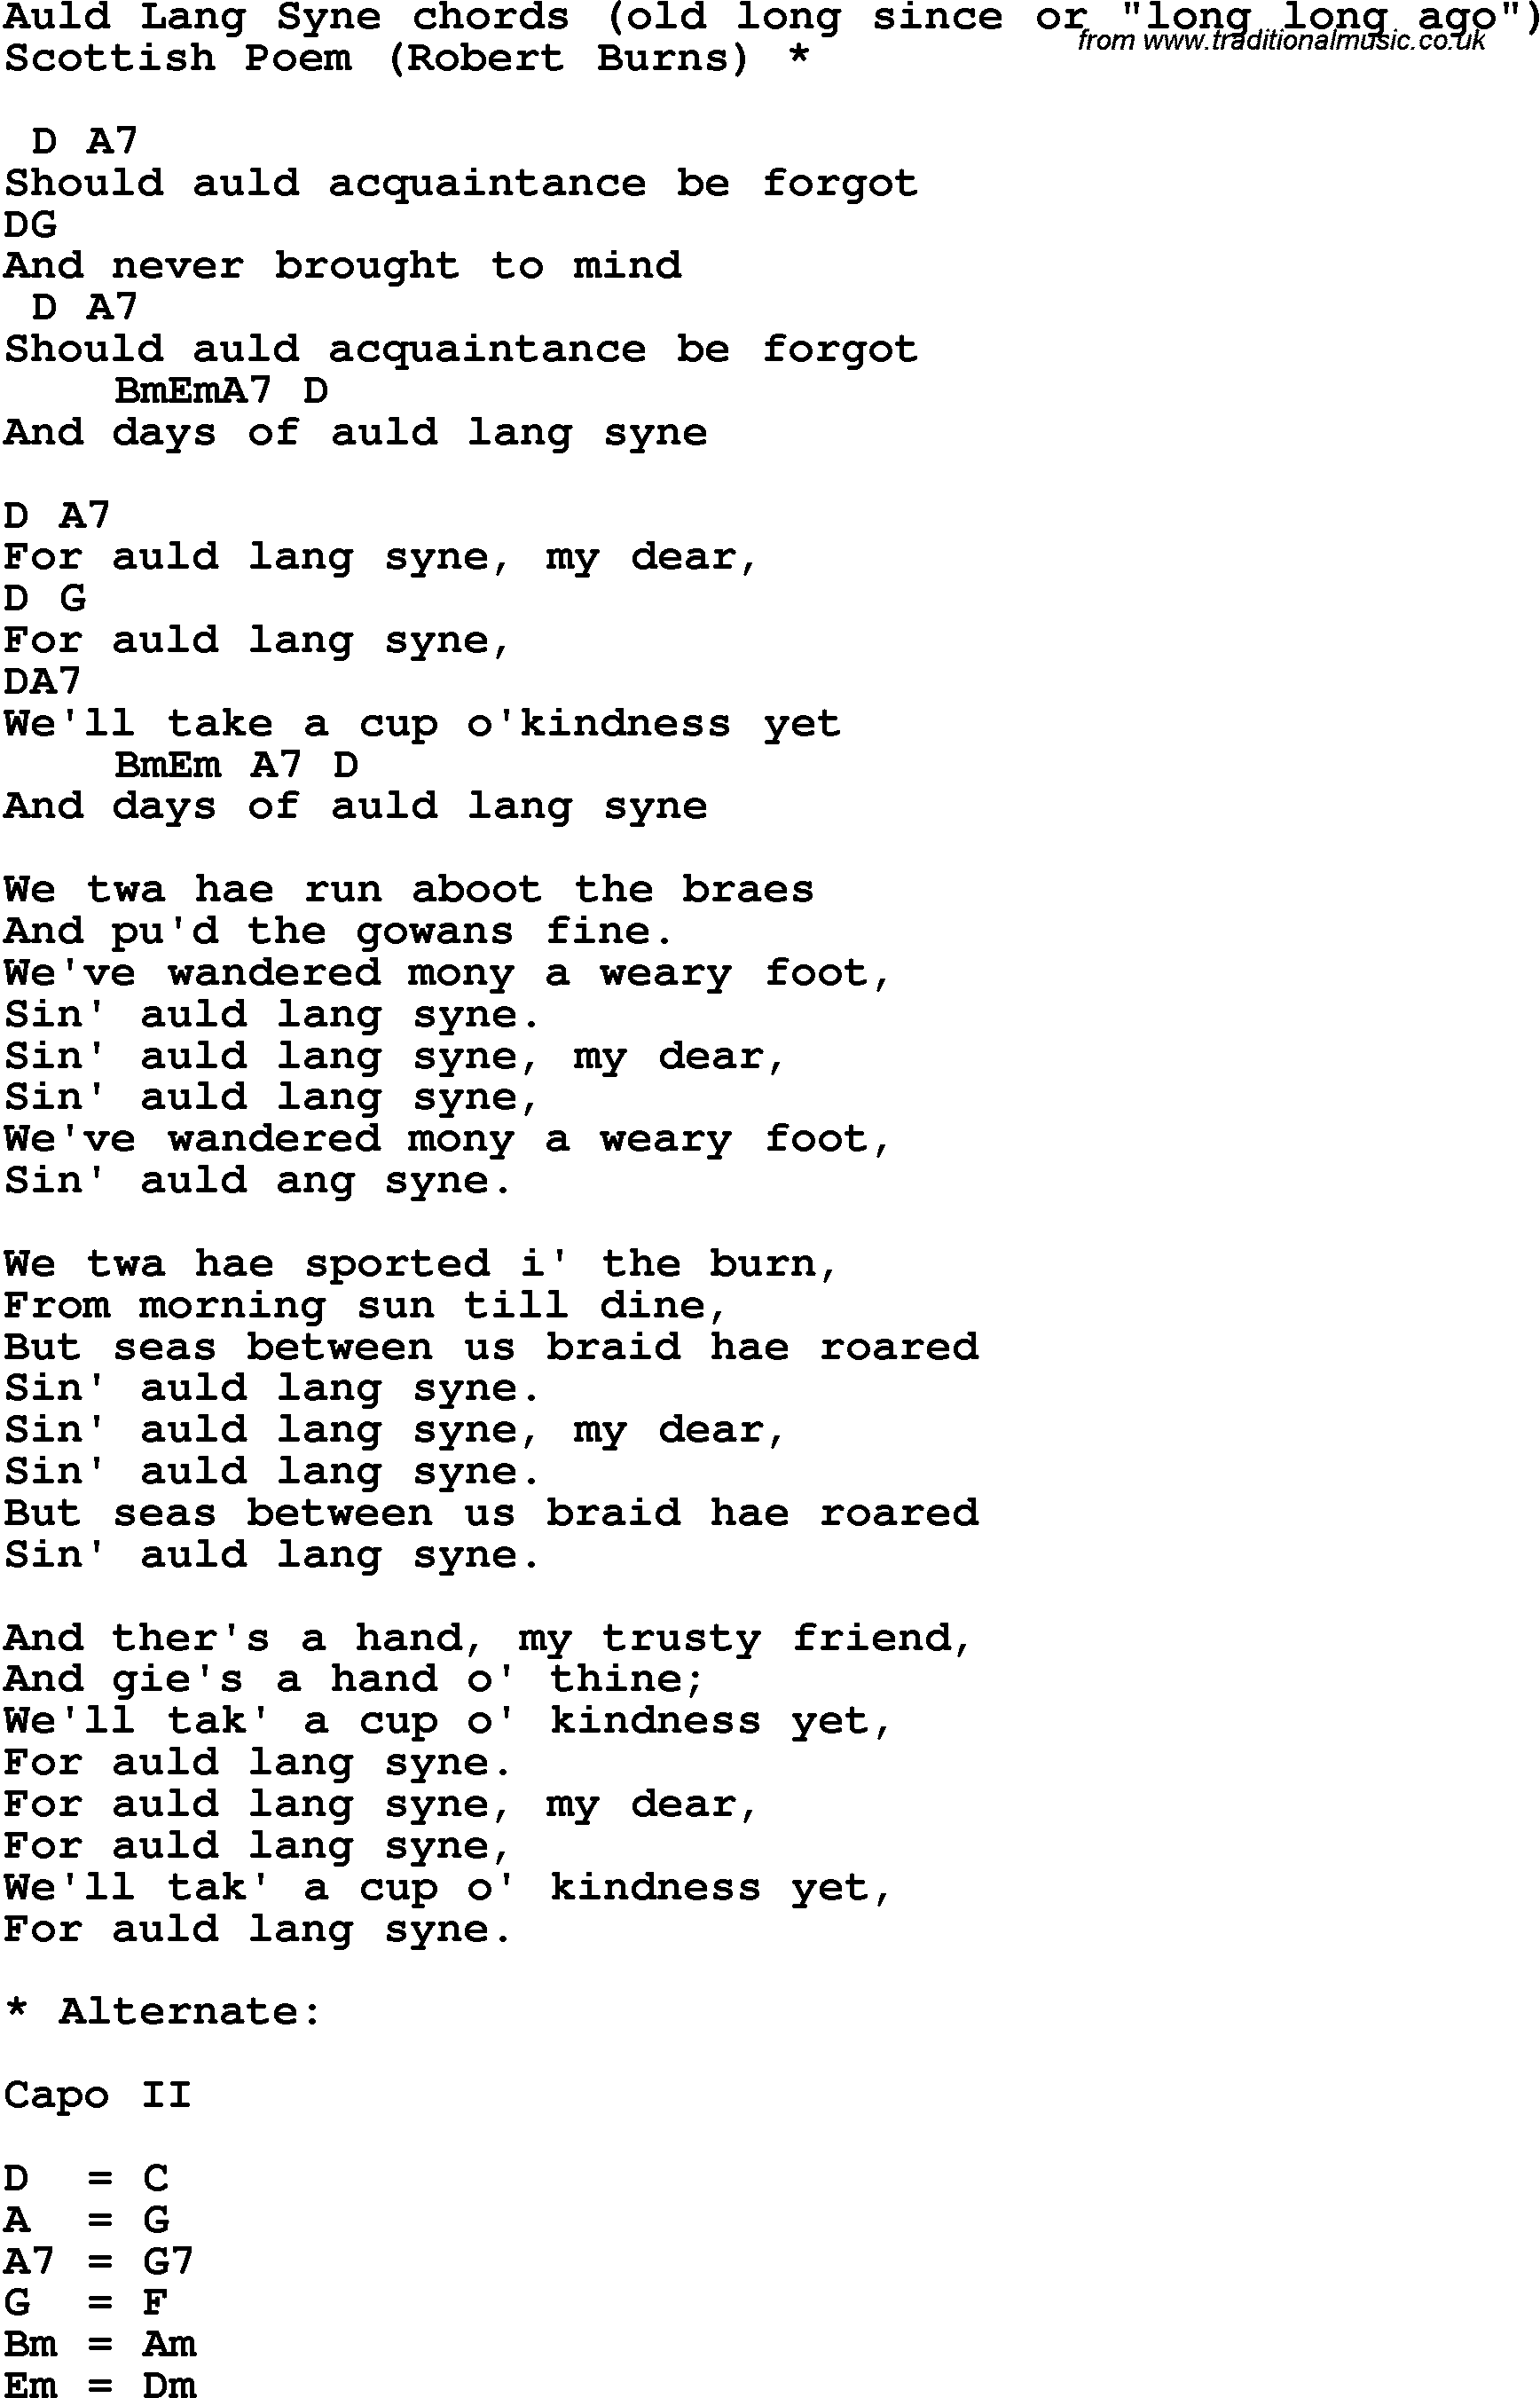 Song lyrics with guitar chords for Auld Lang Syne